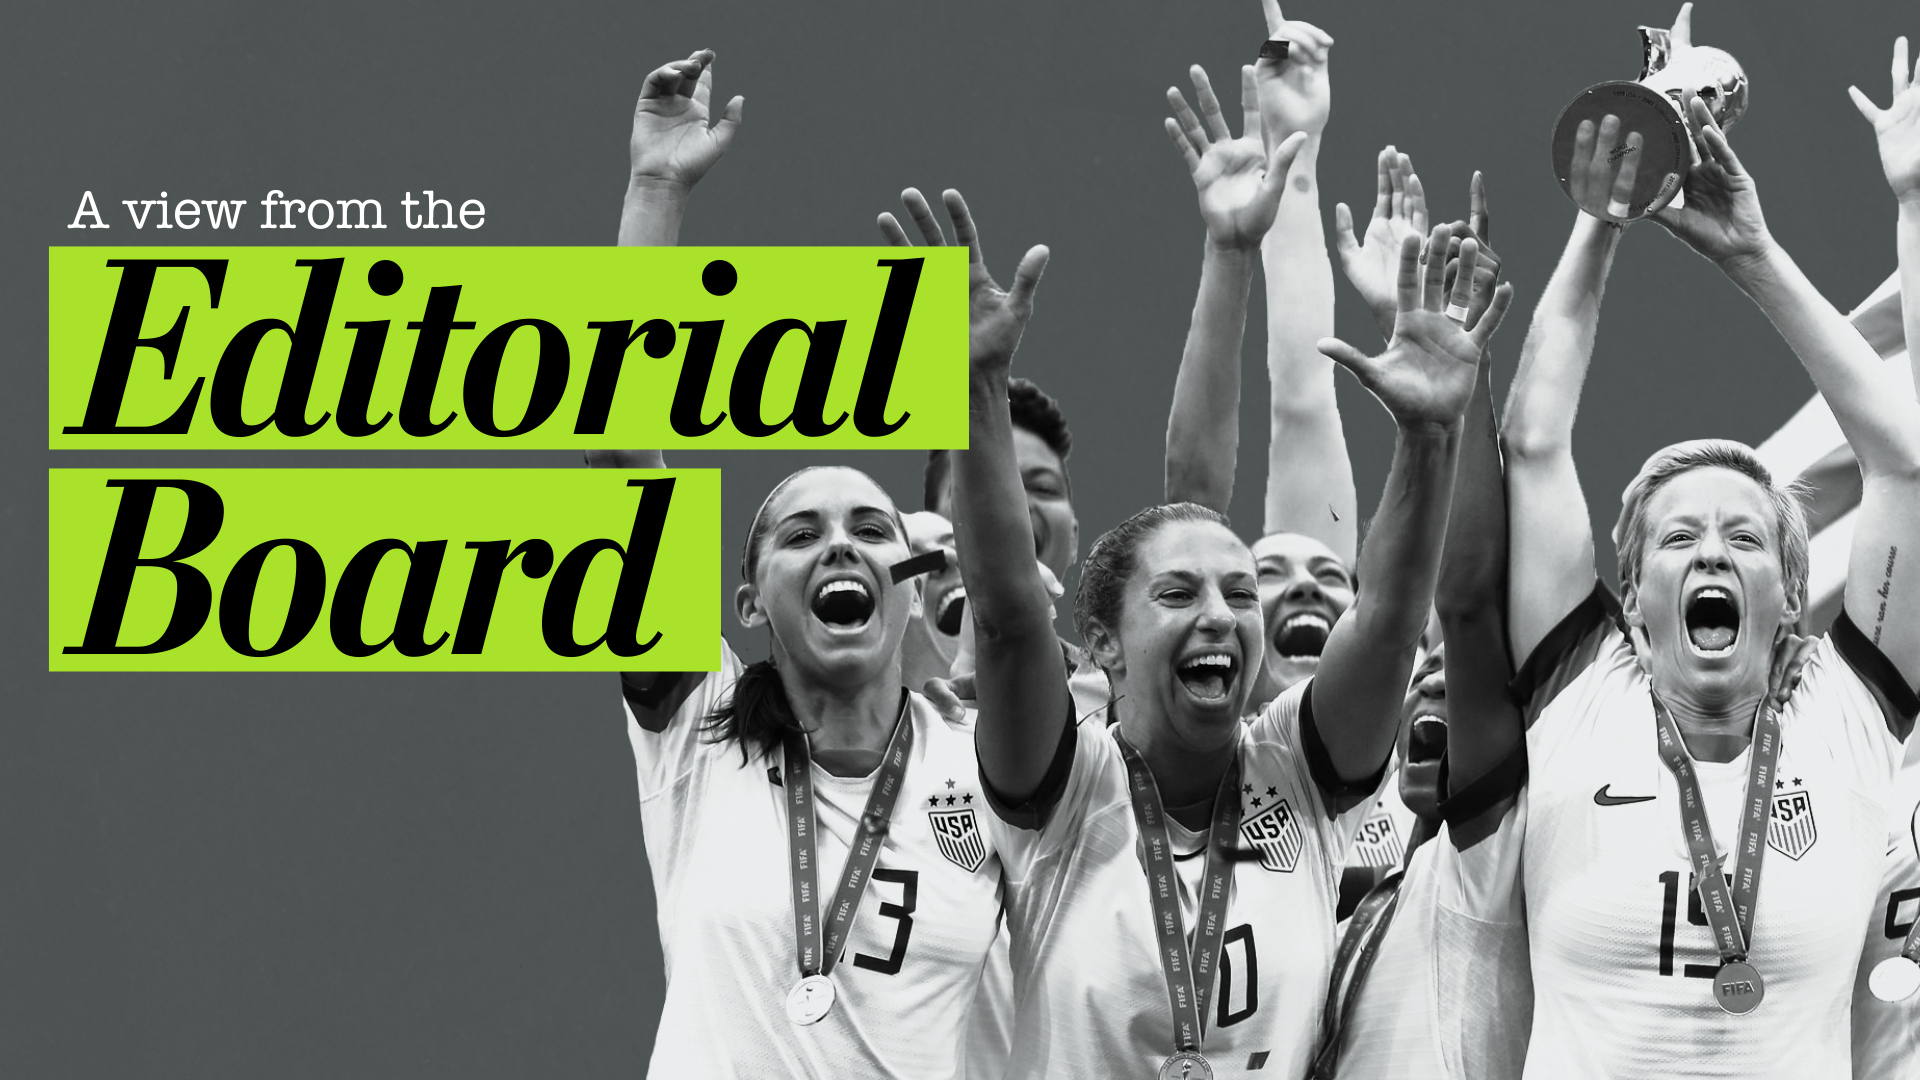 The U.S. women's soccer team has more than earned equal pay